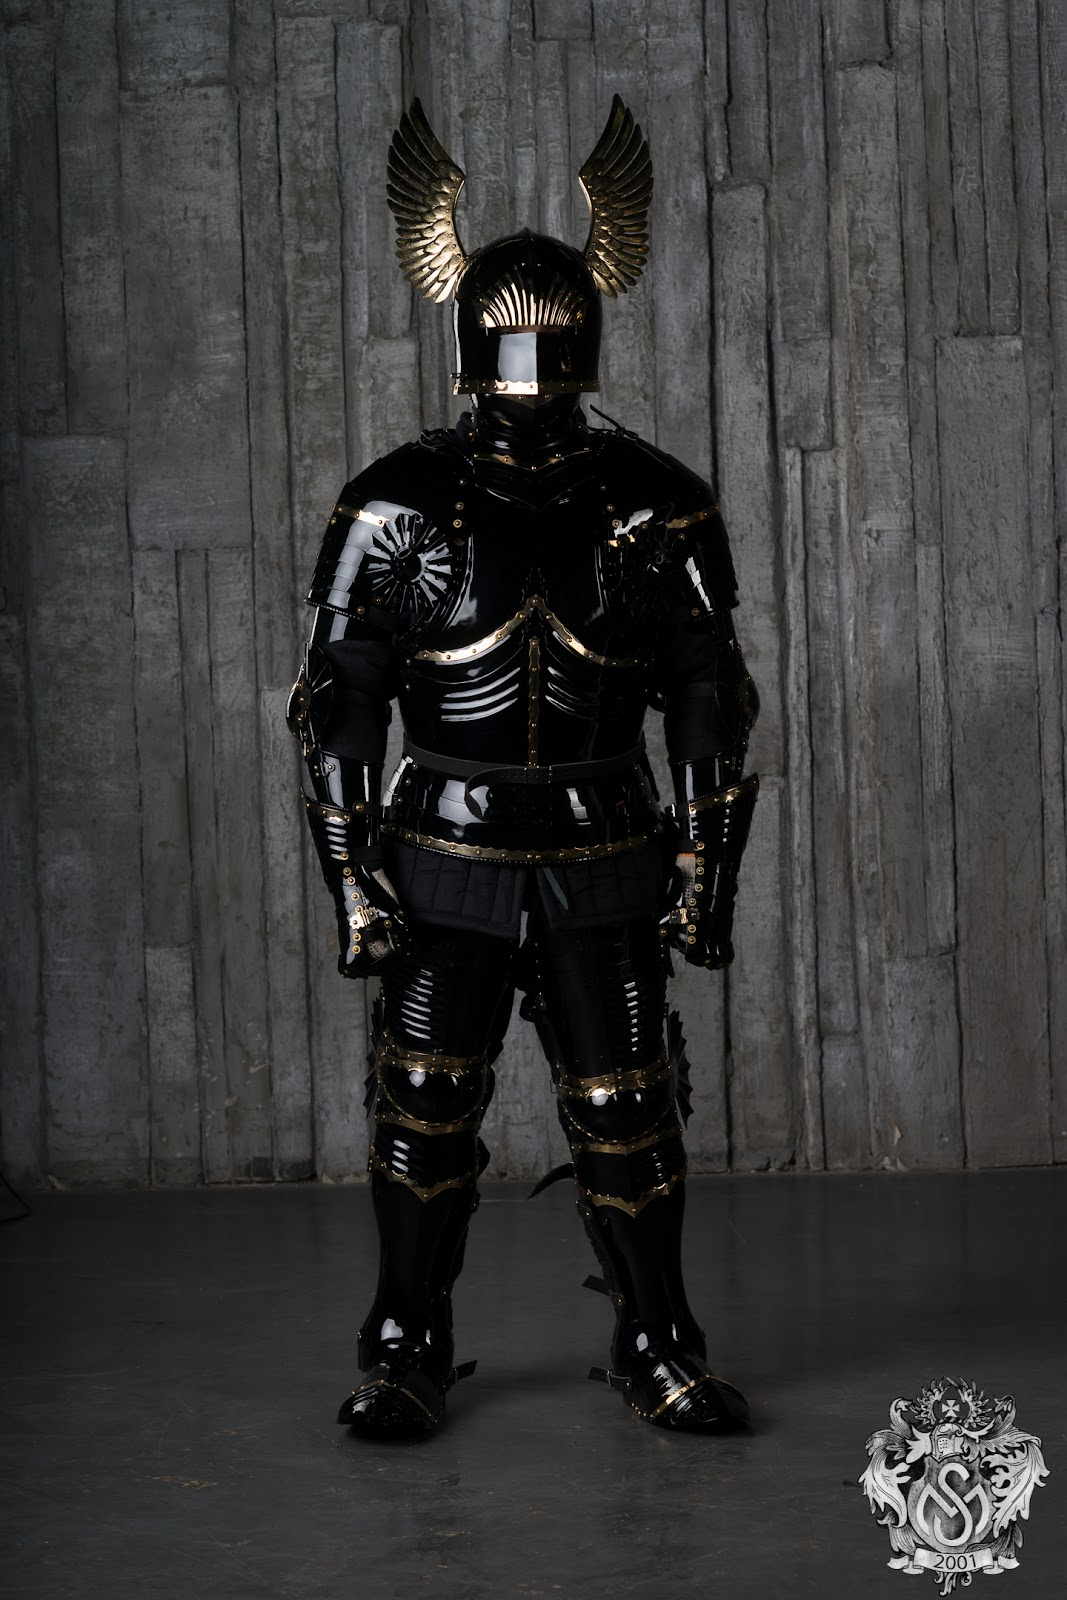 medeival_armour_in_gothic_style.jpg